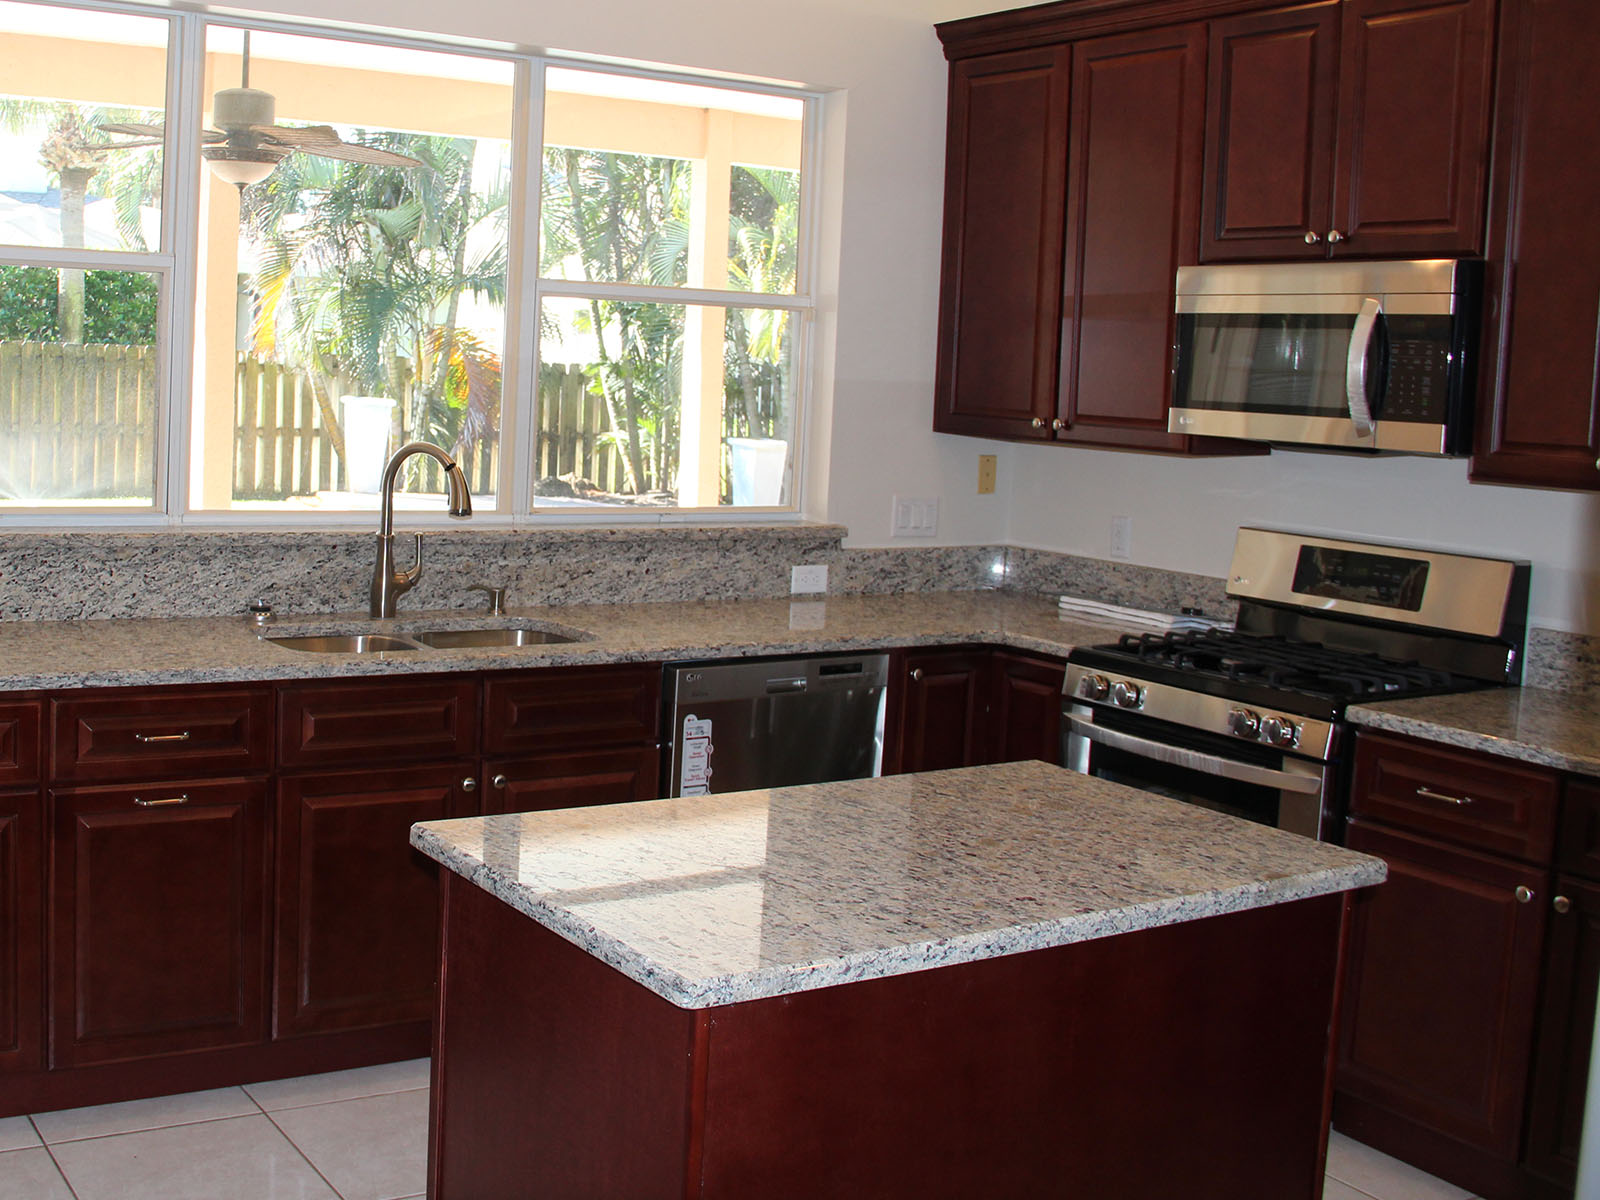 Kitchen Countertop Cabinets Kitchen Countertops Cabinets And Baths Sales And Installation In